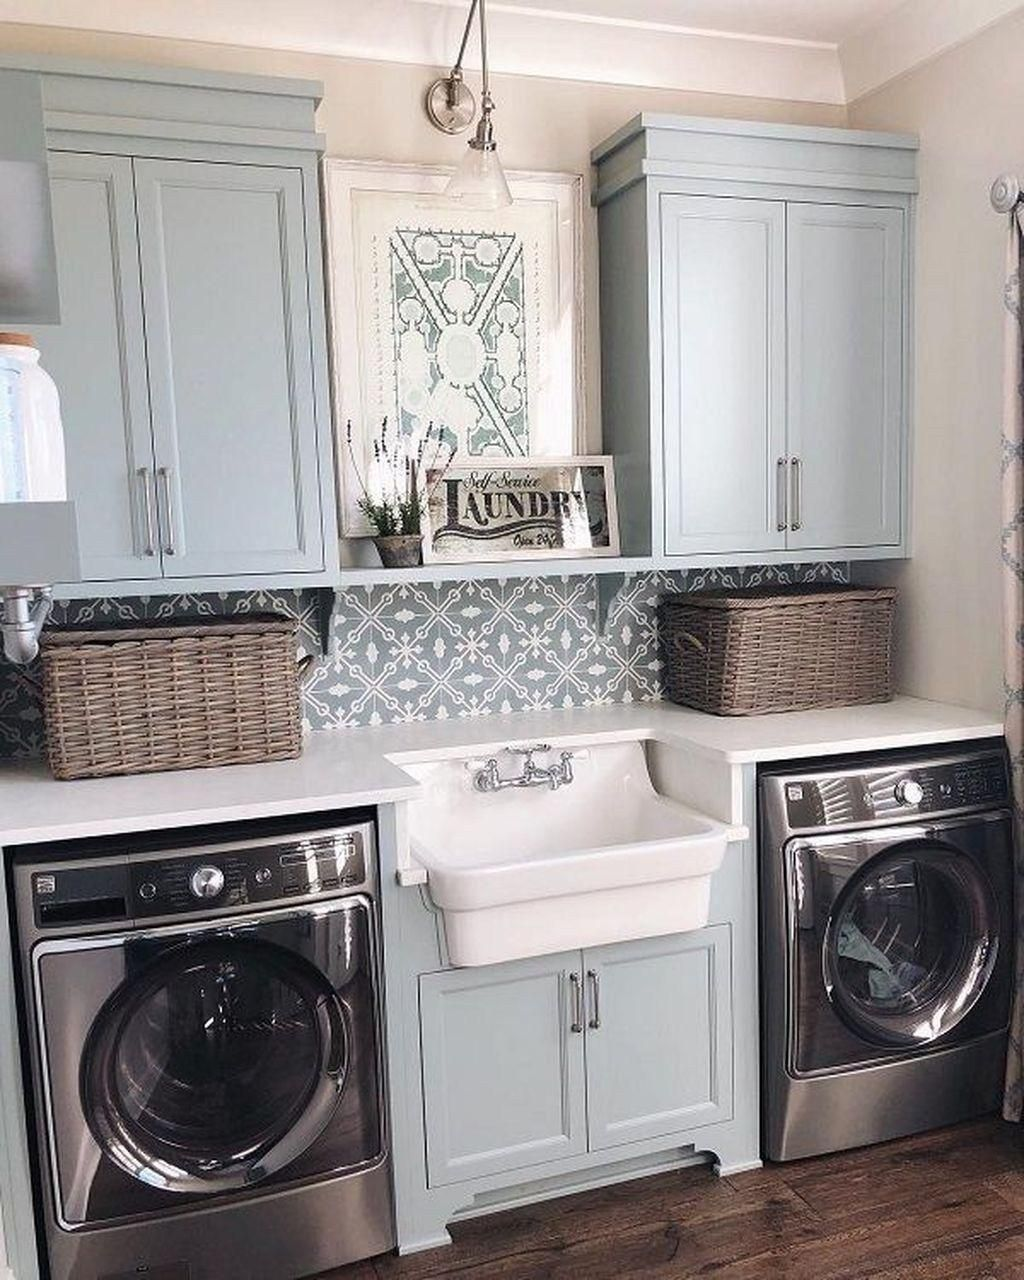 Amazing Farmhouse Laundry Room Decor Ideas 10 Dream Laundry Room Laundry Room Inspiration Laundry Room Remodel